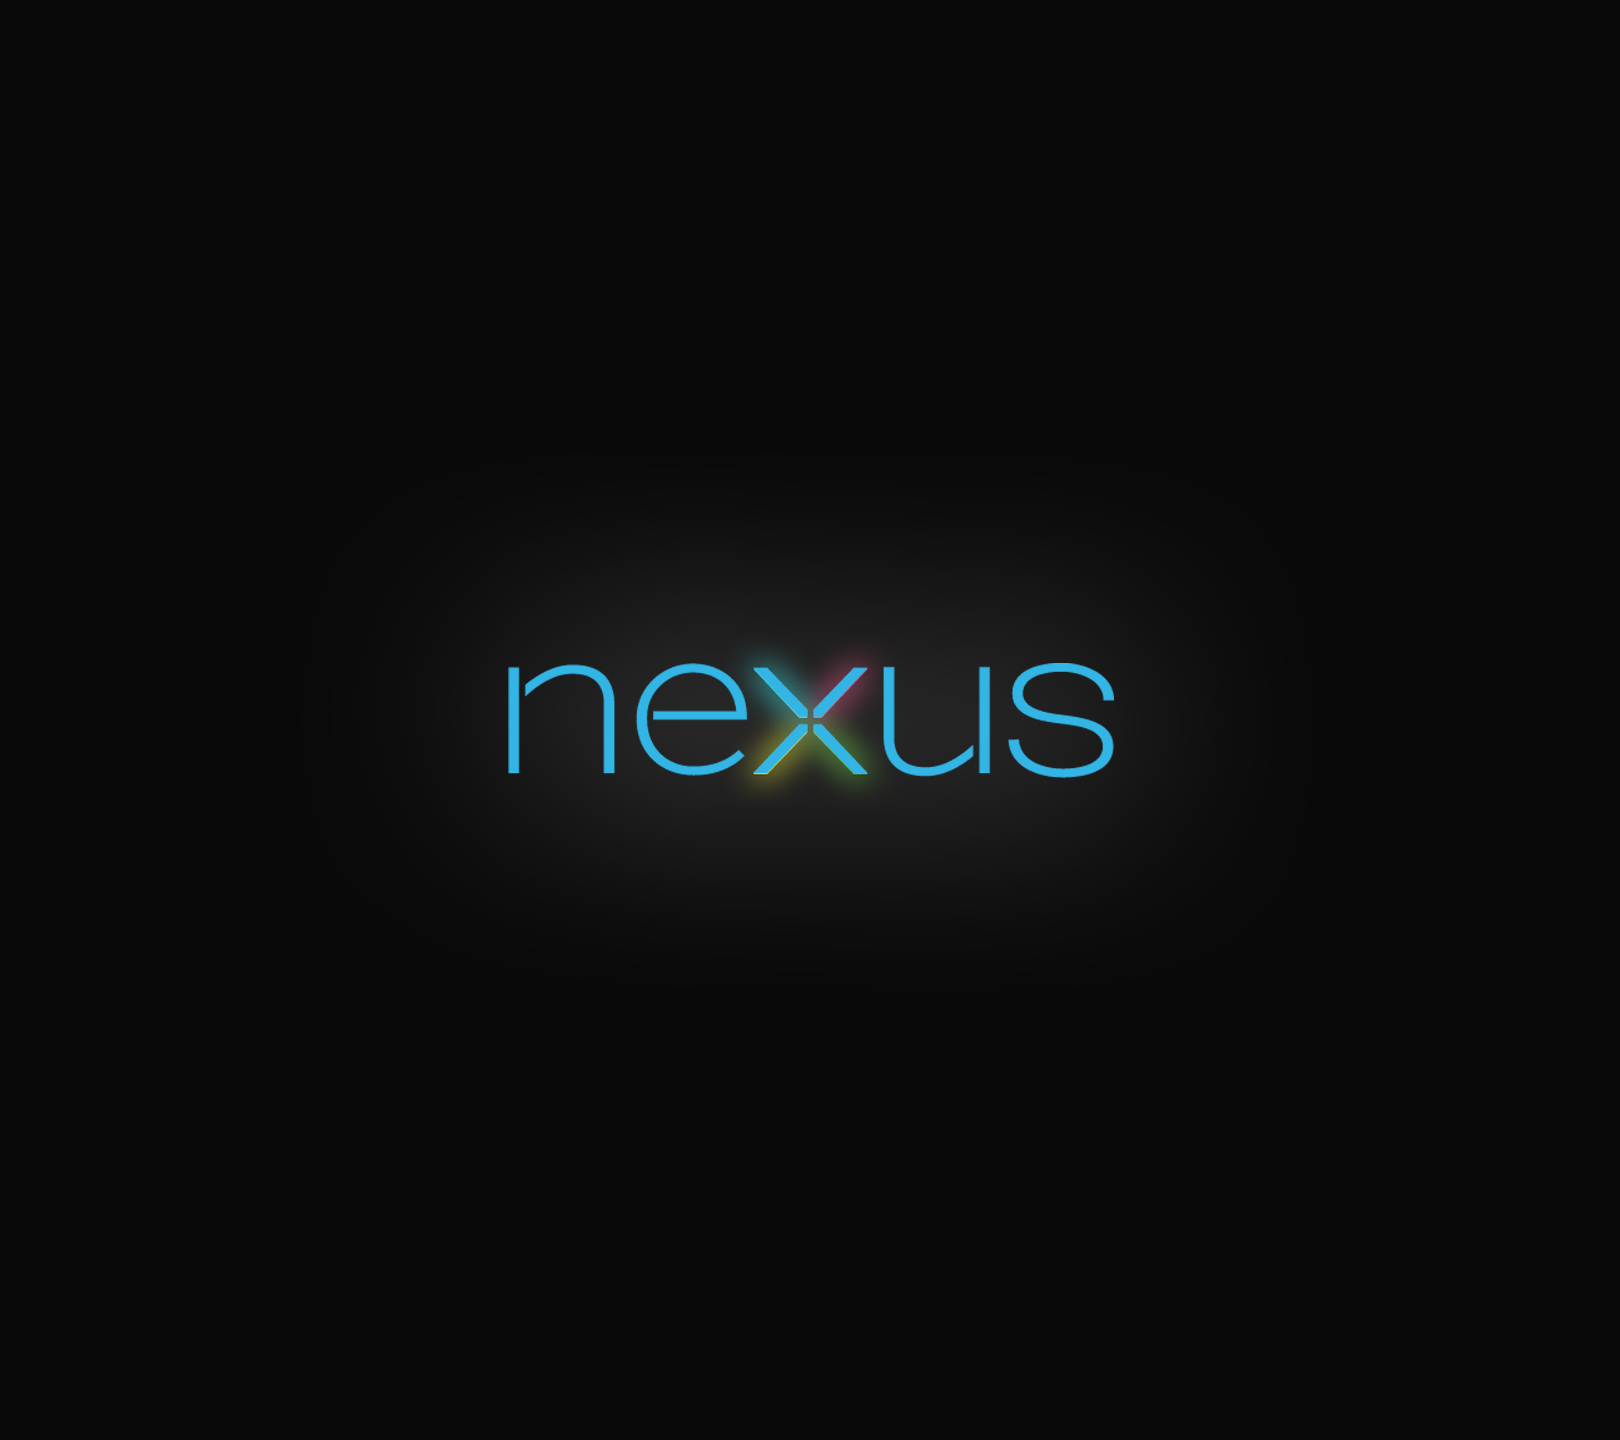 nexus wallpaper5